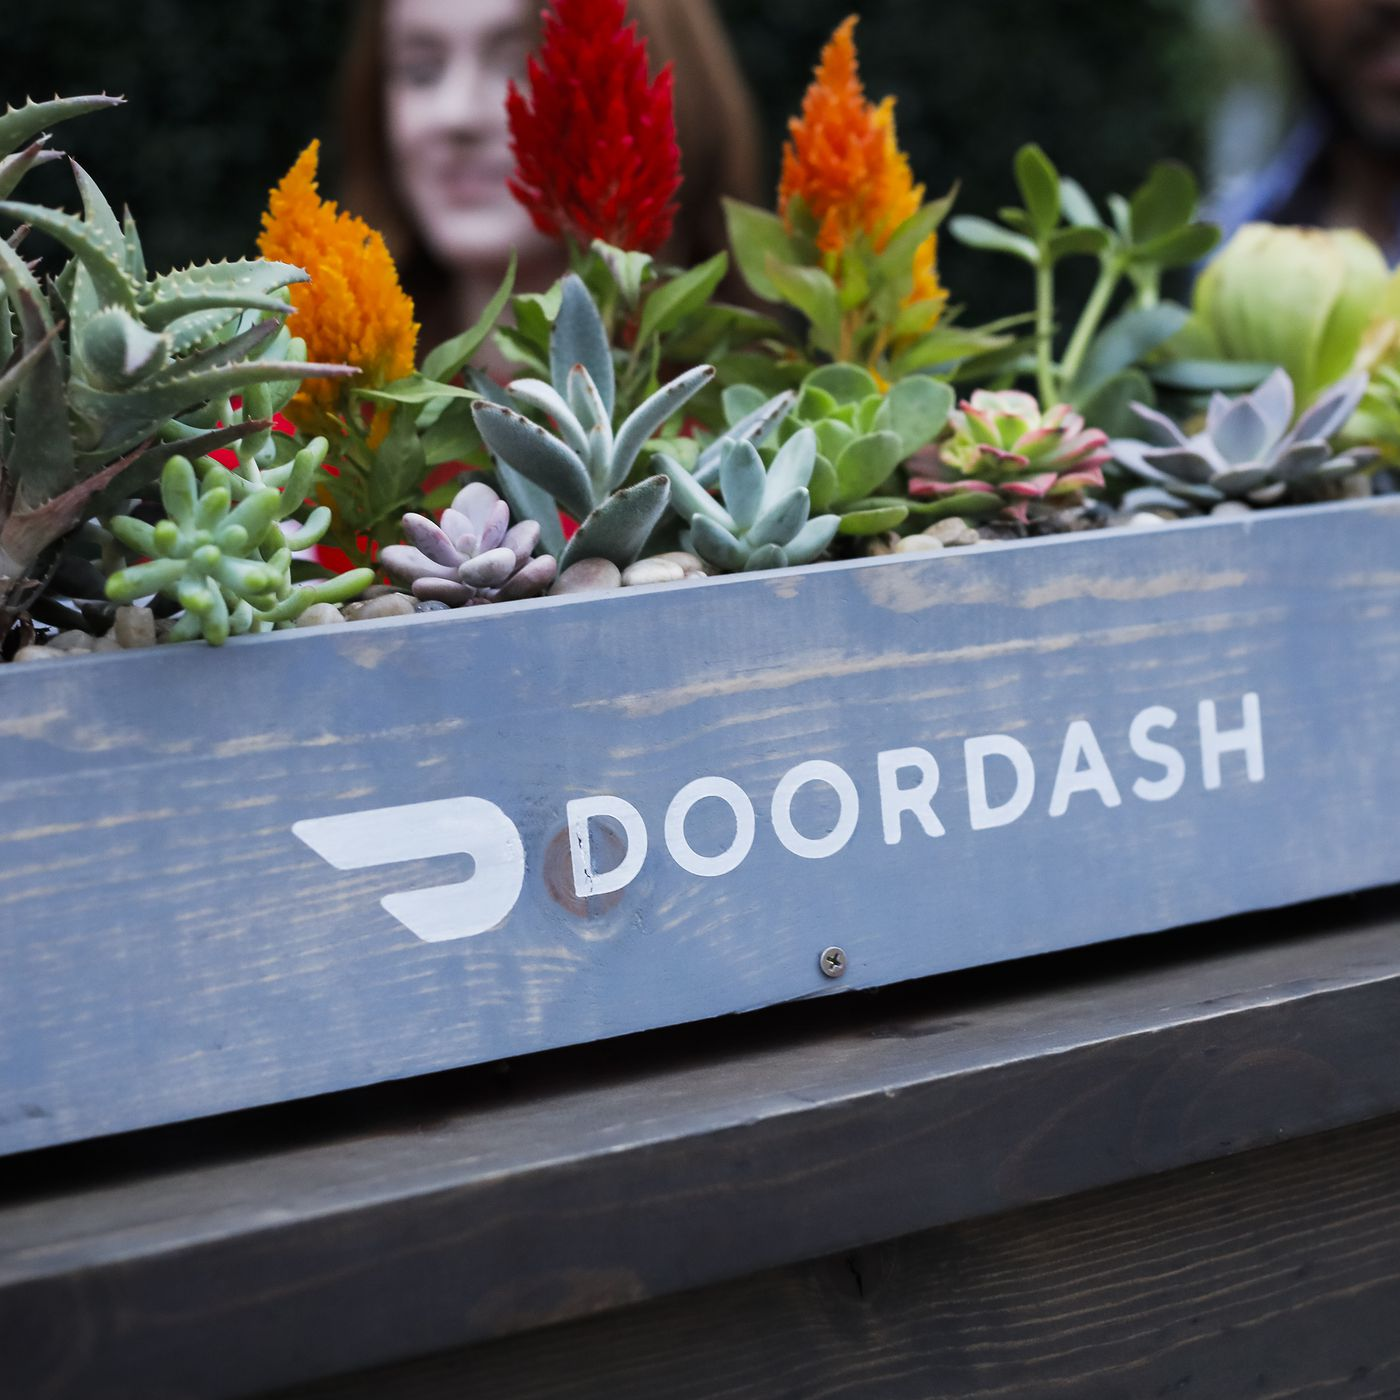 Round Table Late Delivery Policy.Pressure Is Mounting On Food Delivery App Doordash To Change Its